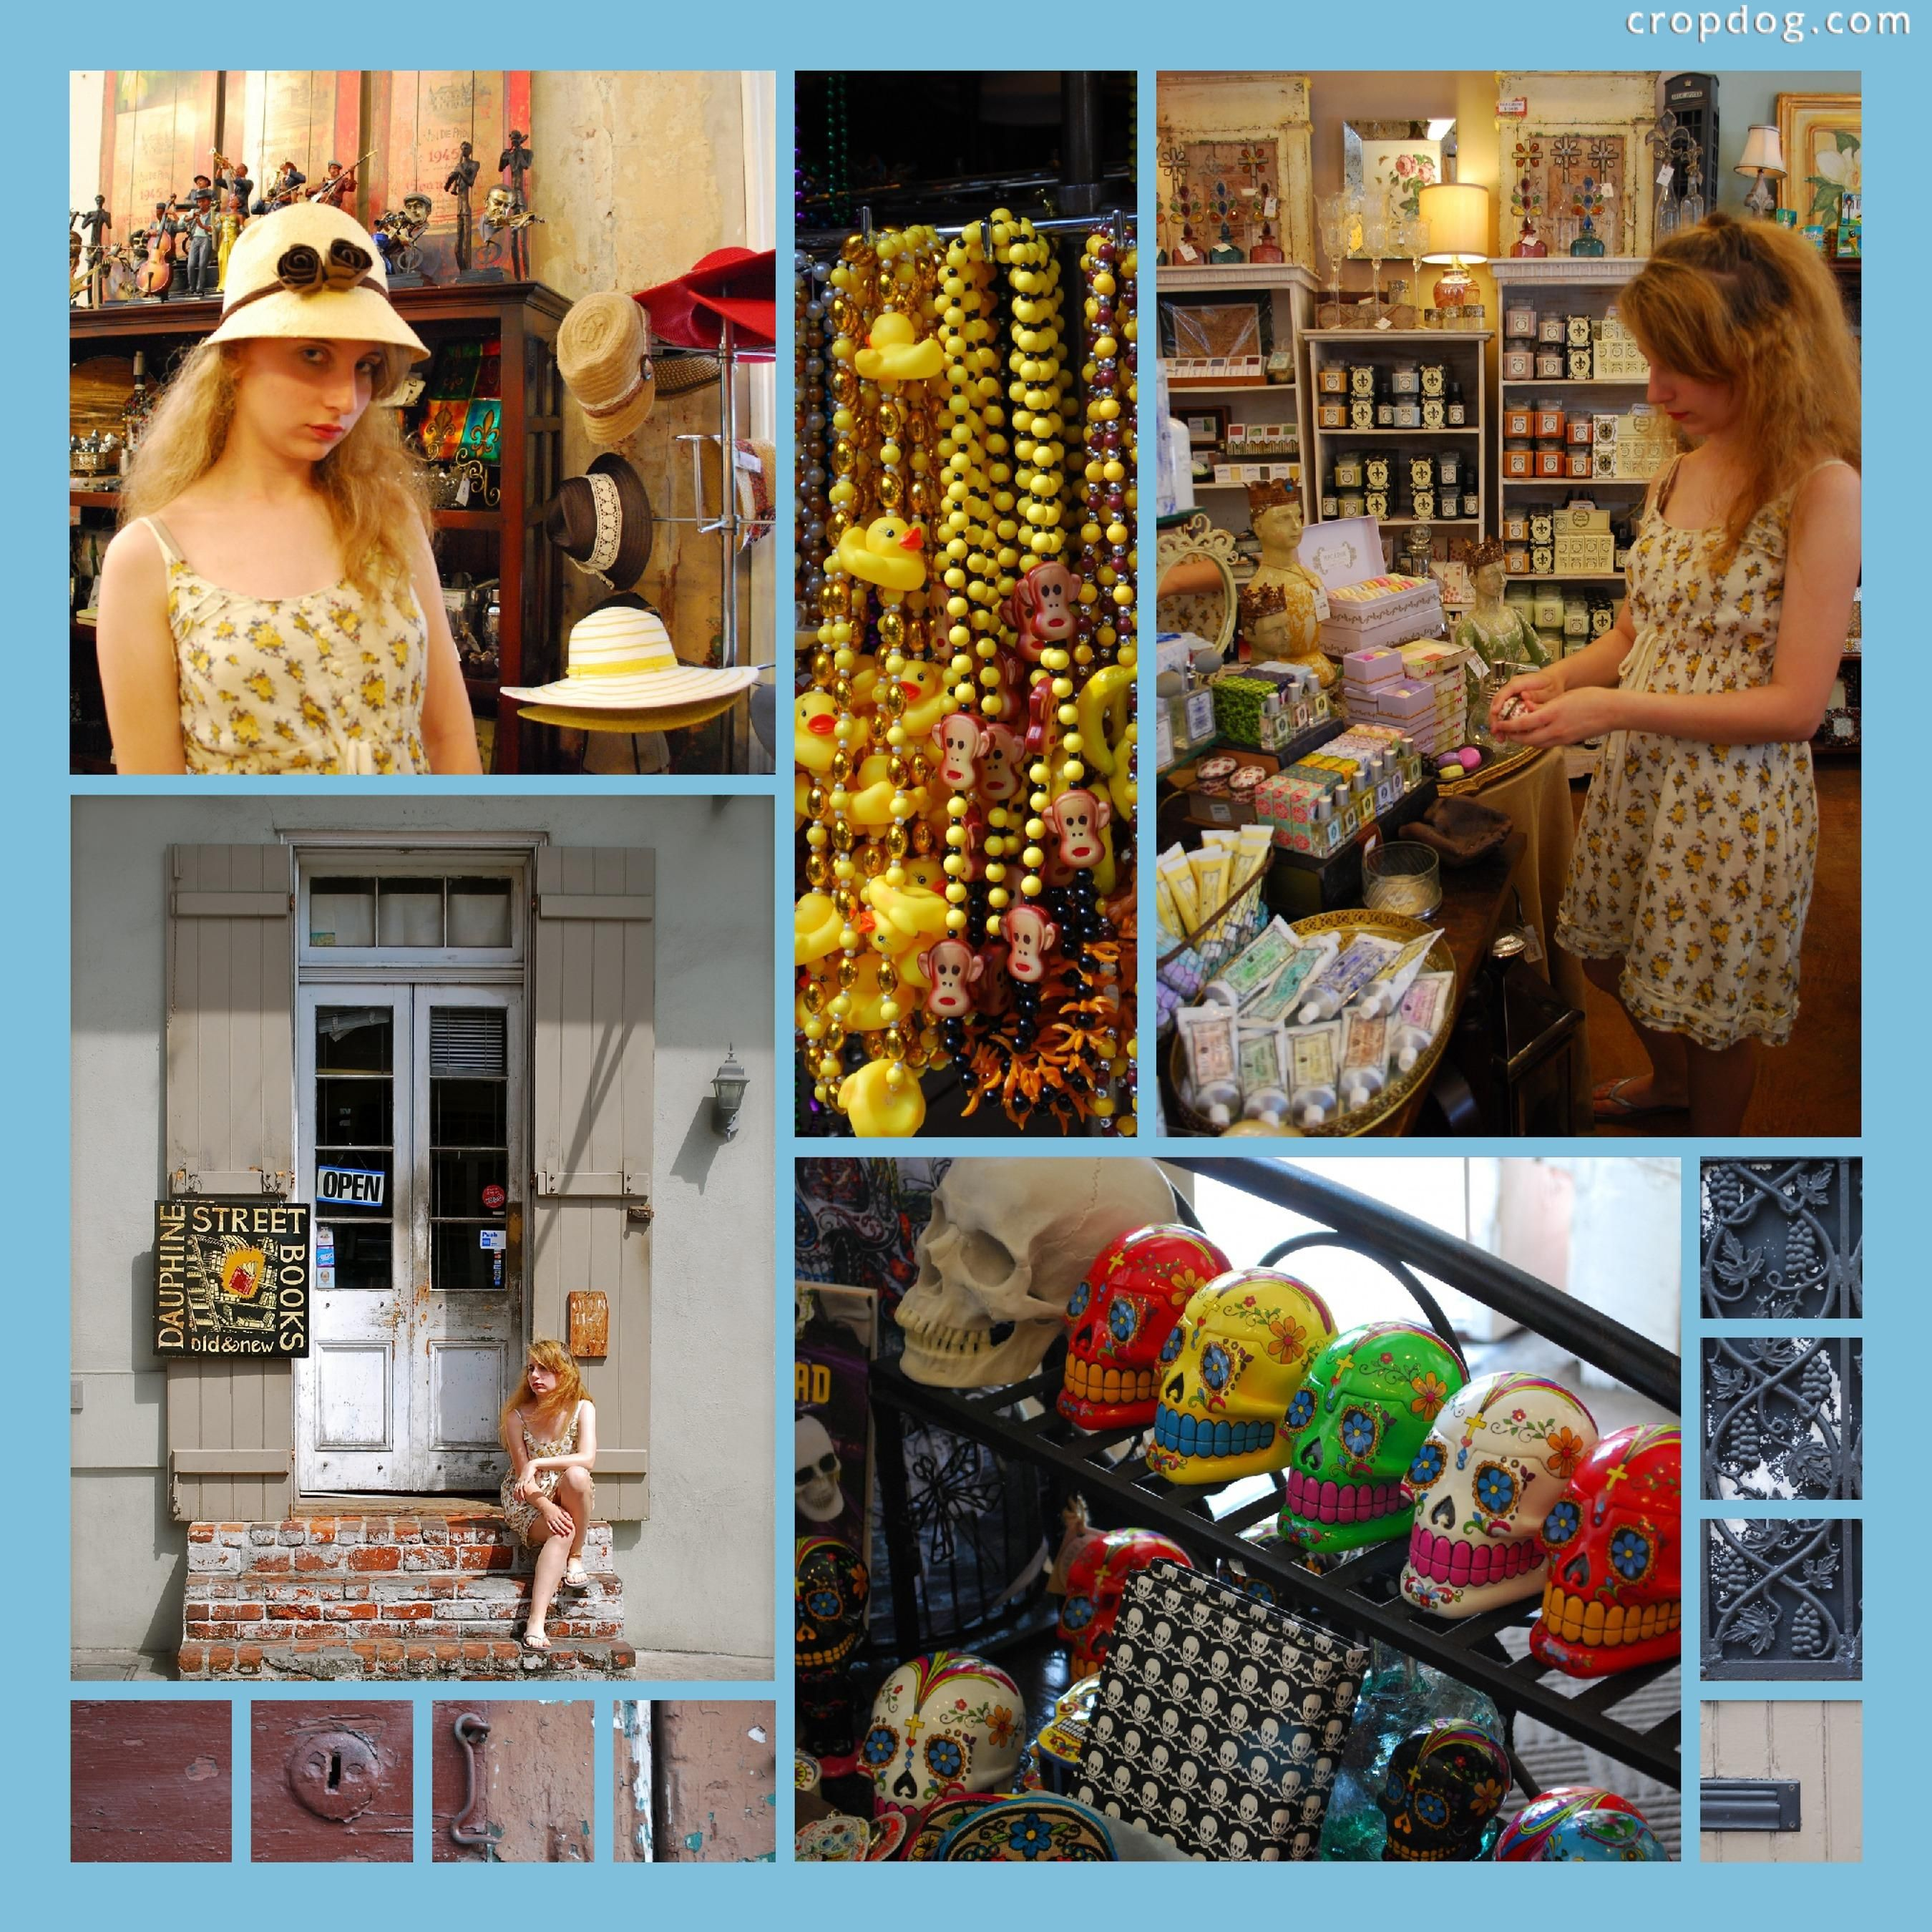 Scrapbook ideas new orleans - Explore Trip To New Orleans Collage Ideas And More